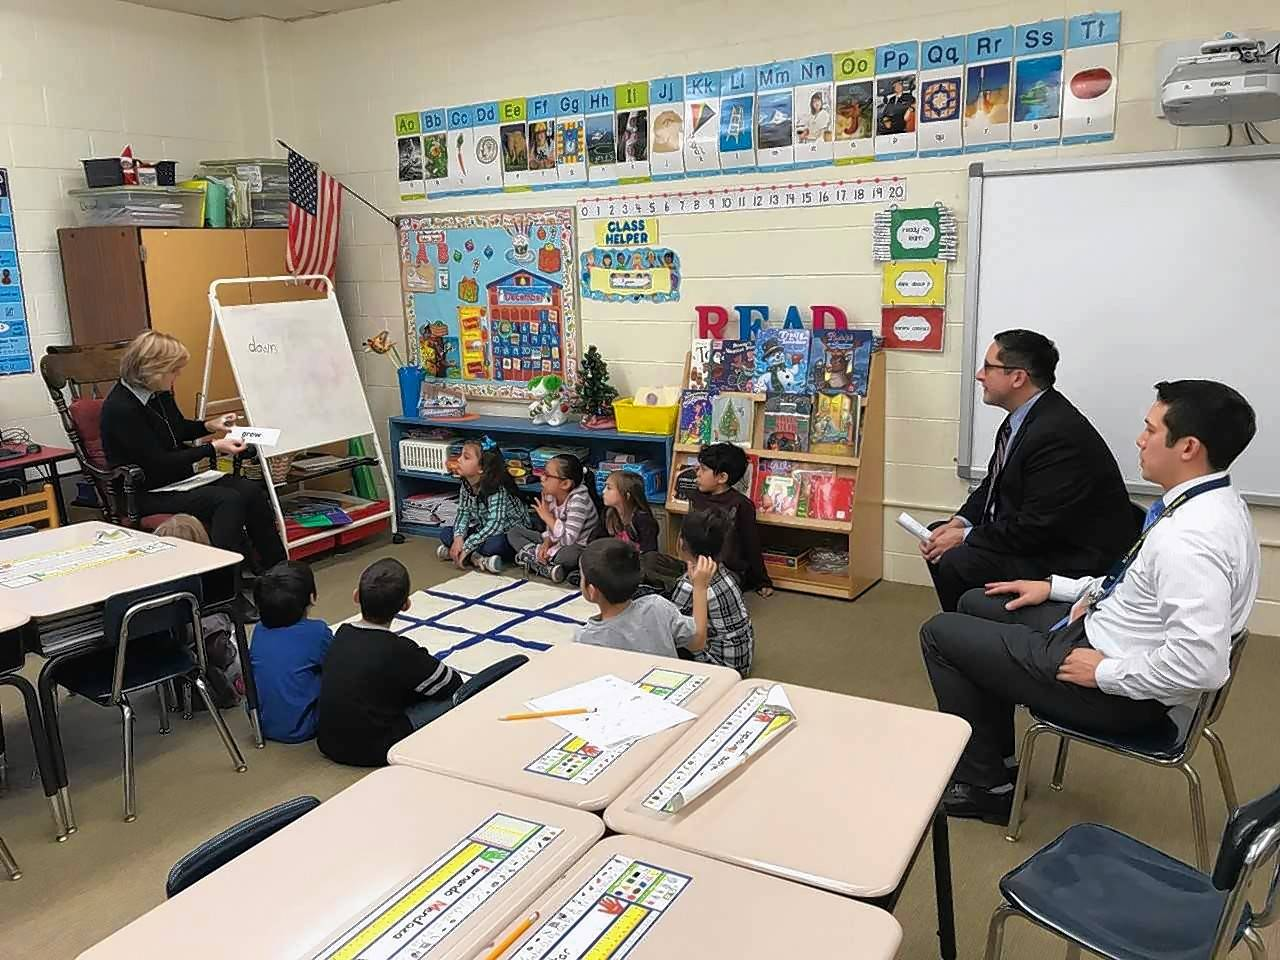 State Rep. Sam Yingling visits classrooms as a part of his principal for a day tour of Round Lake Village Elementary School.